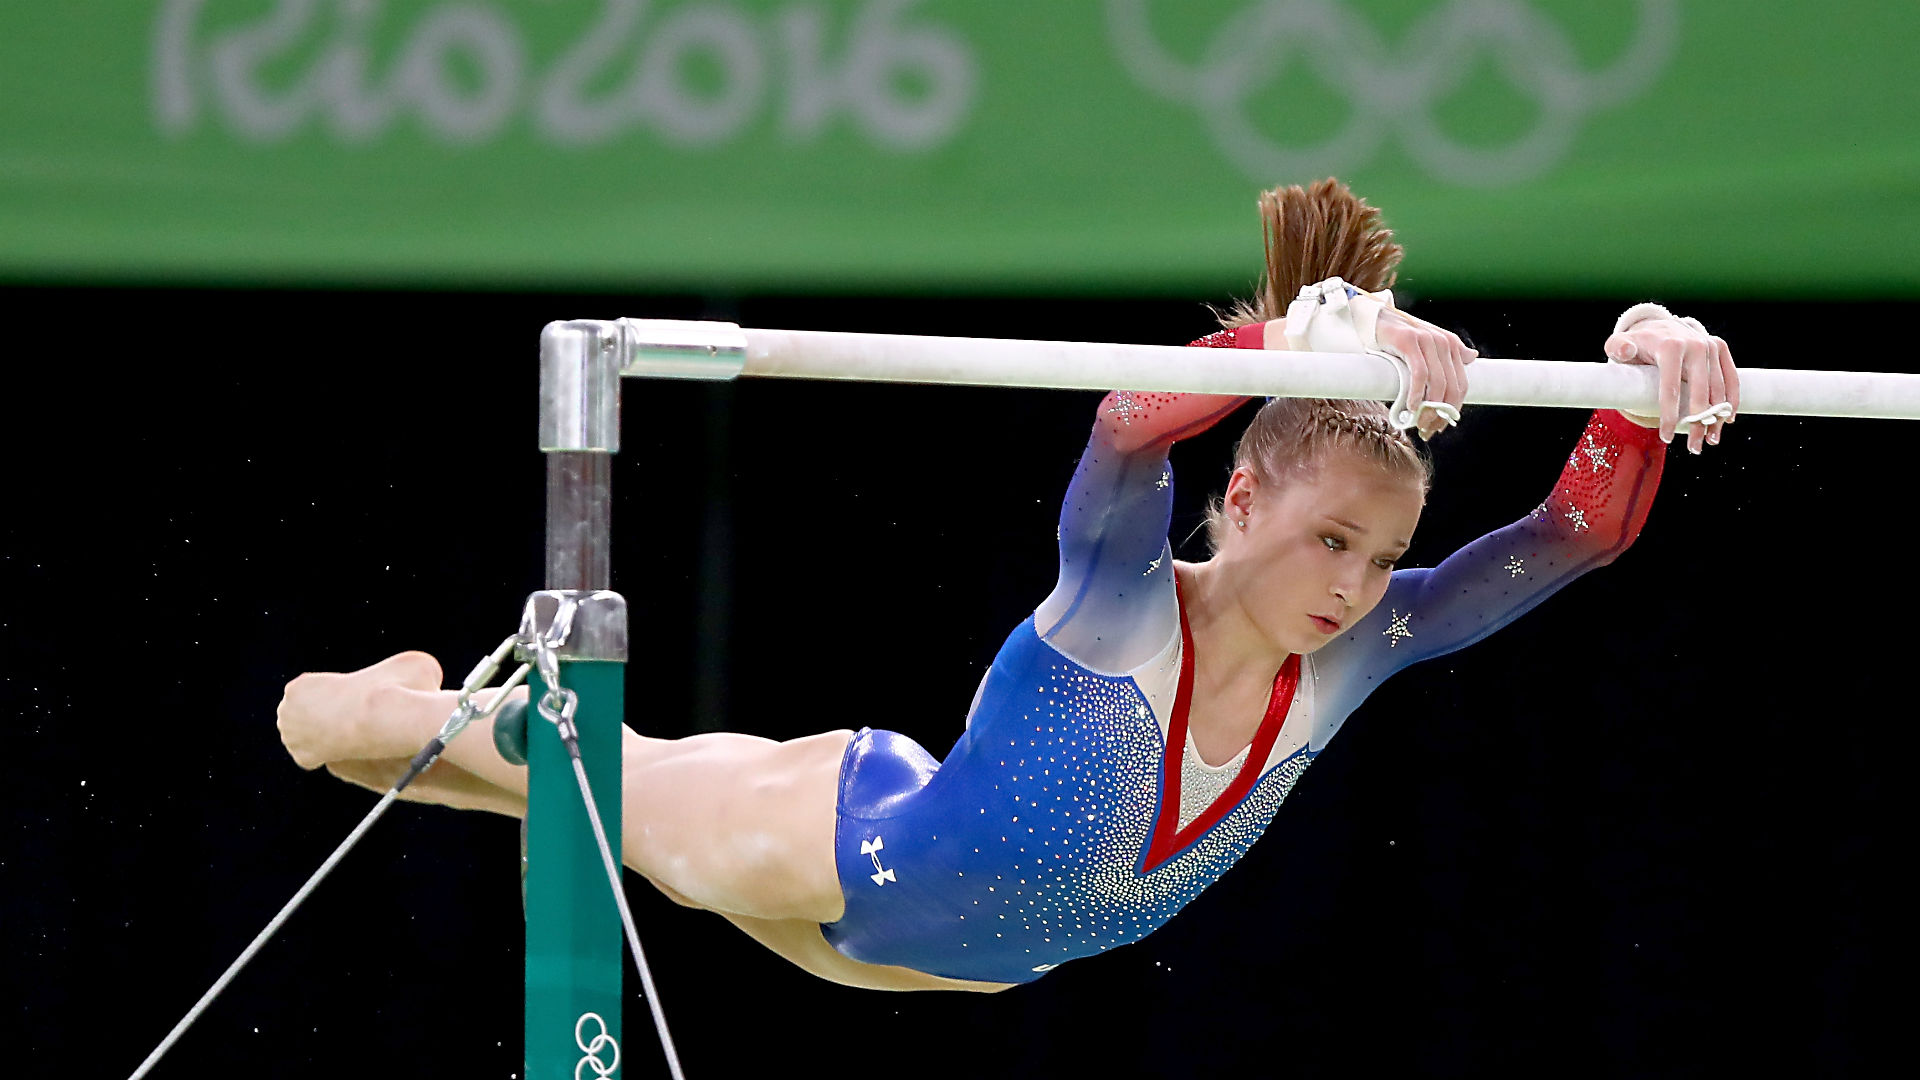 Rio Olympics 2016: Madison Kocian takes silver in uneven bars; Gabby Douglas finishes seventh ...